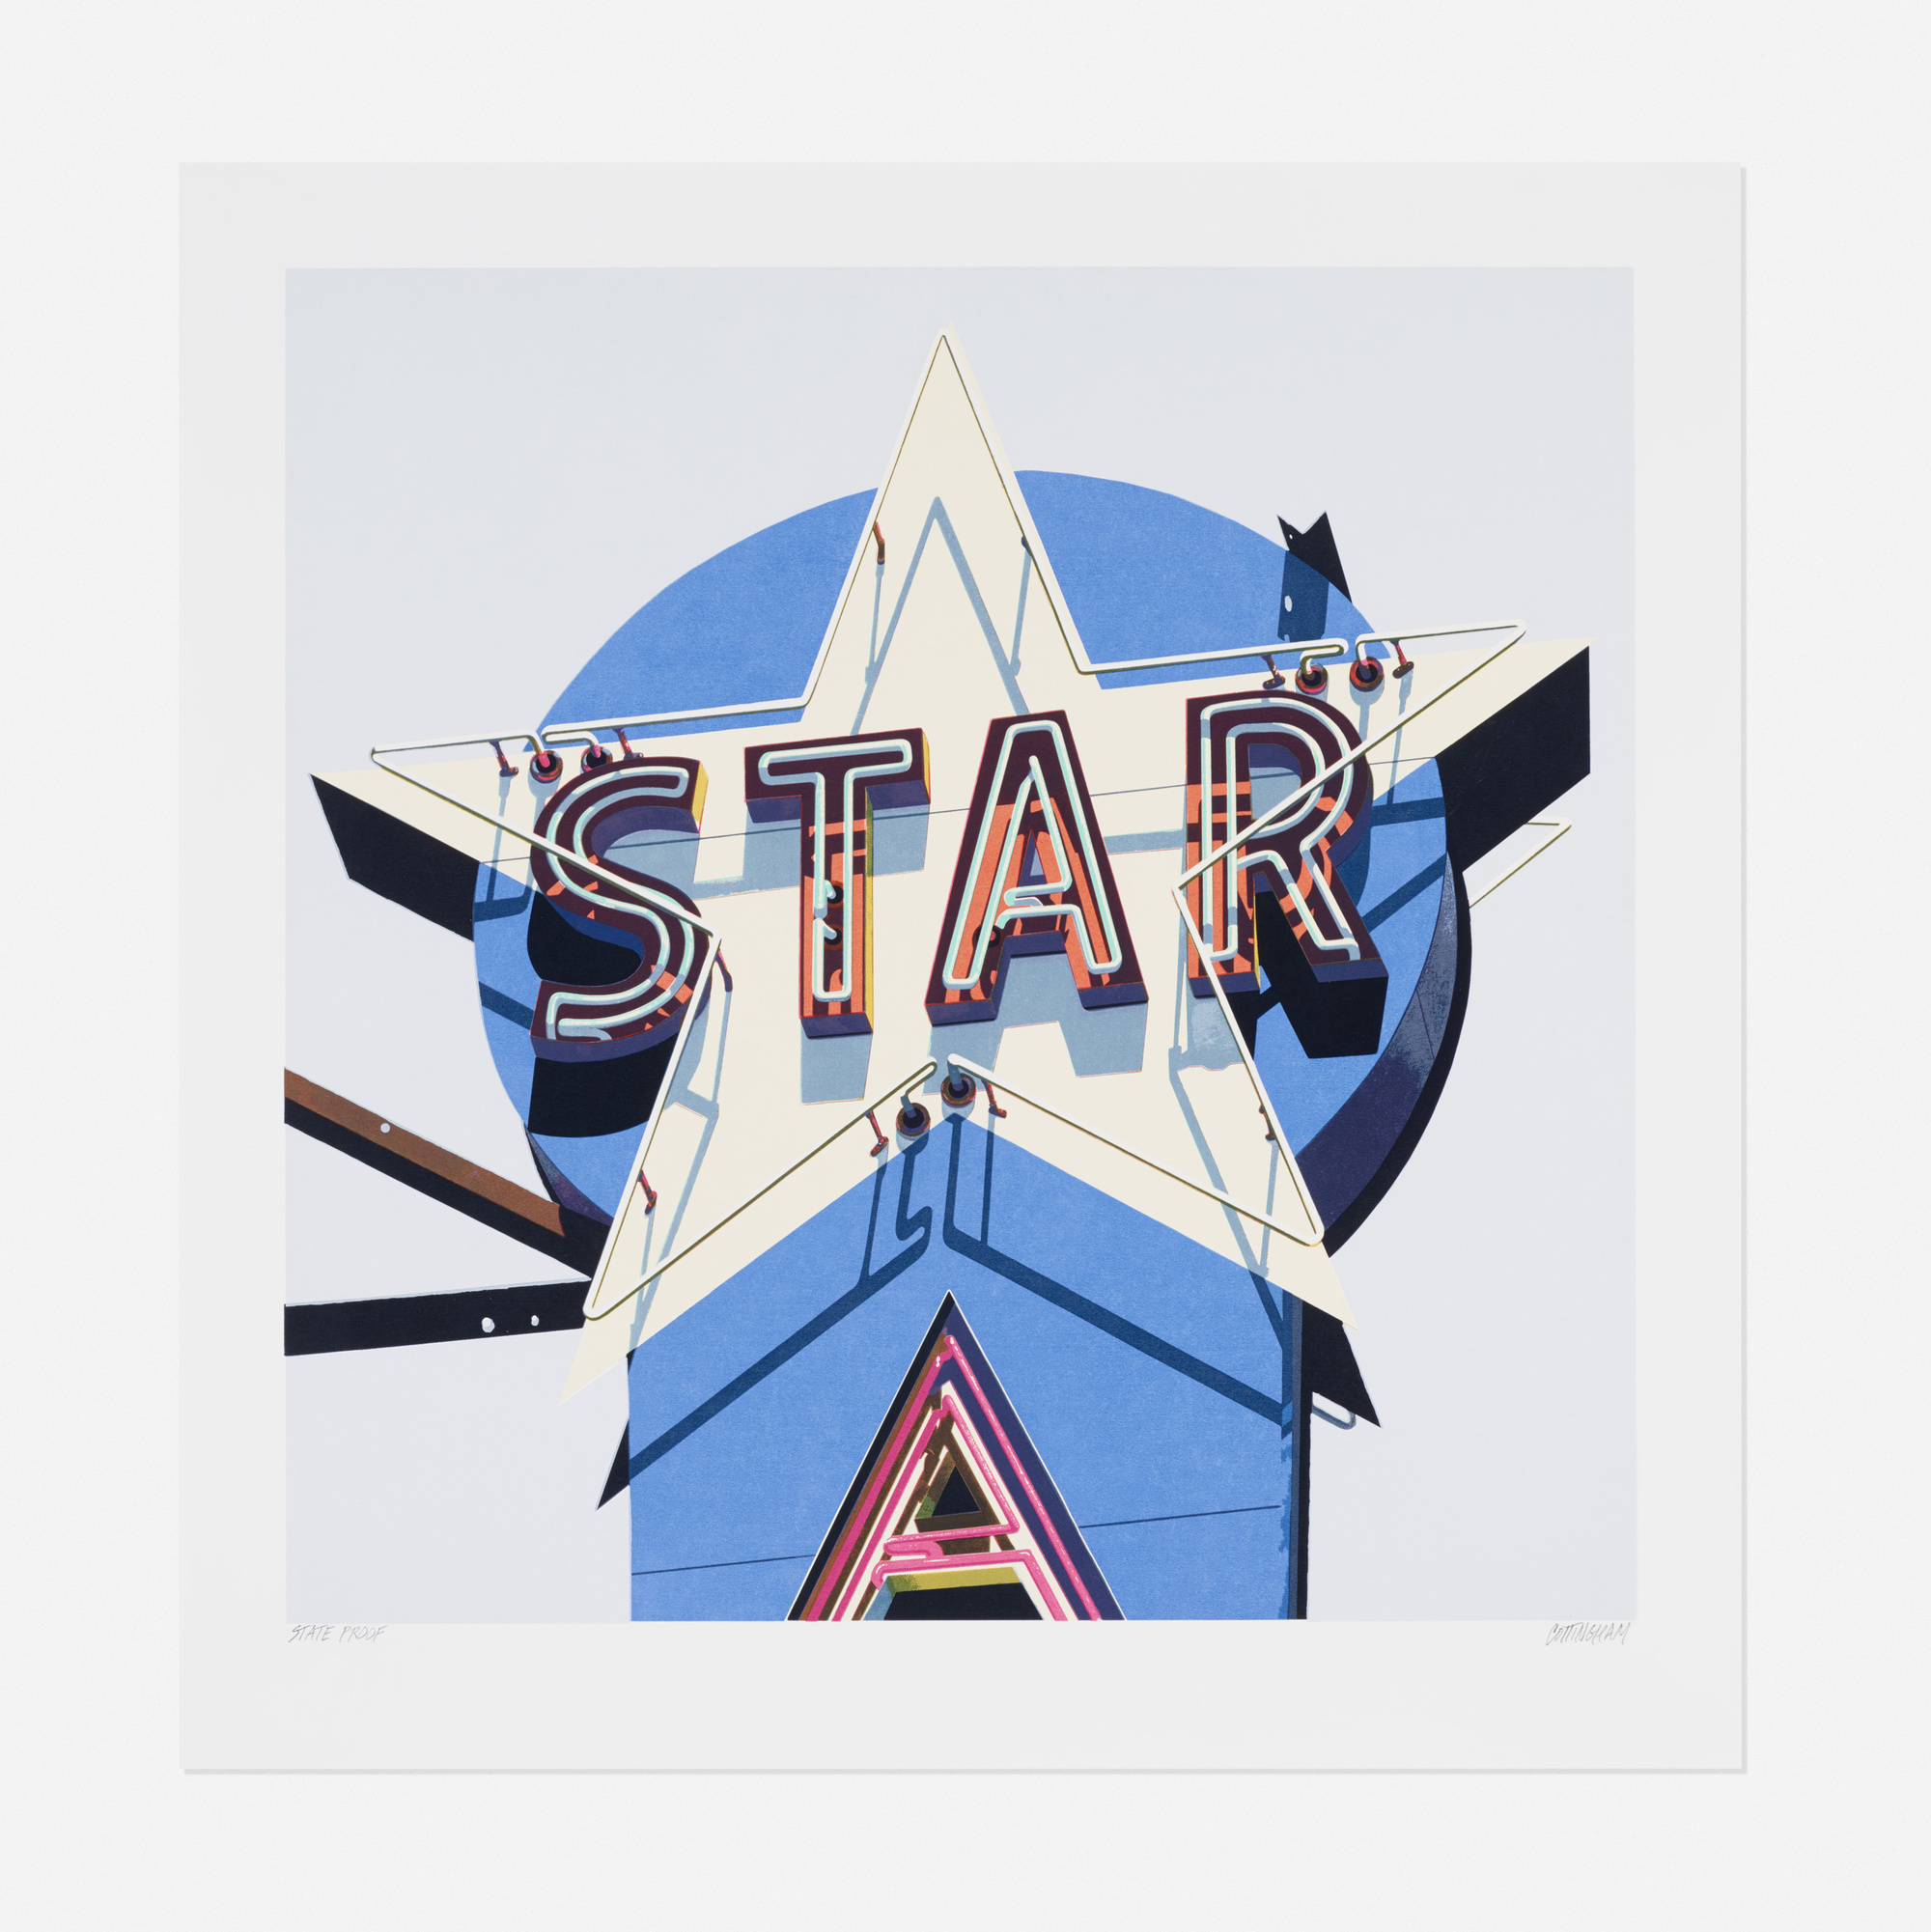 266: Robert Cottingham / Star (from the American Signs portfolio) (1 of 1)